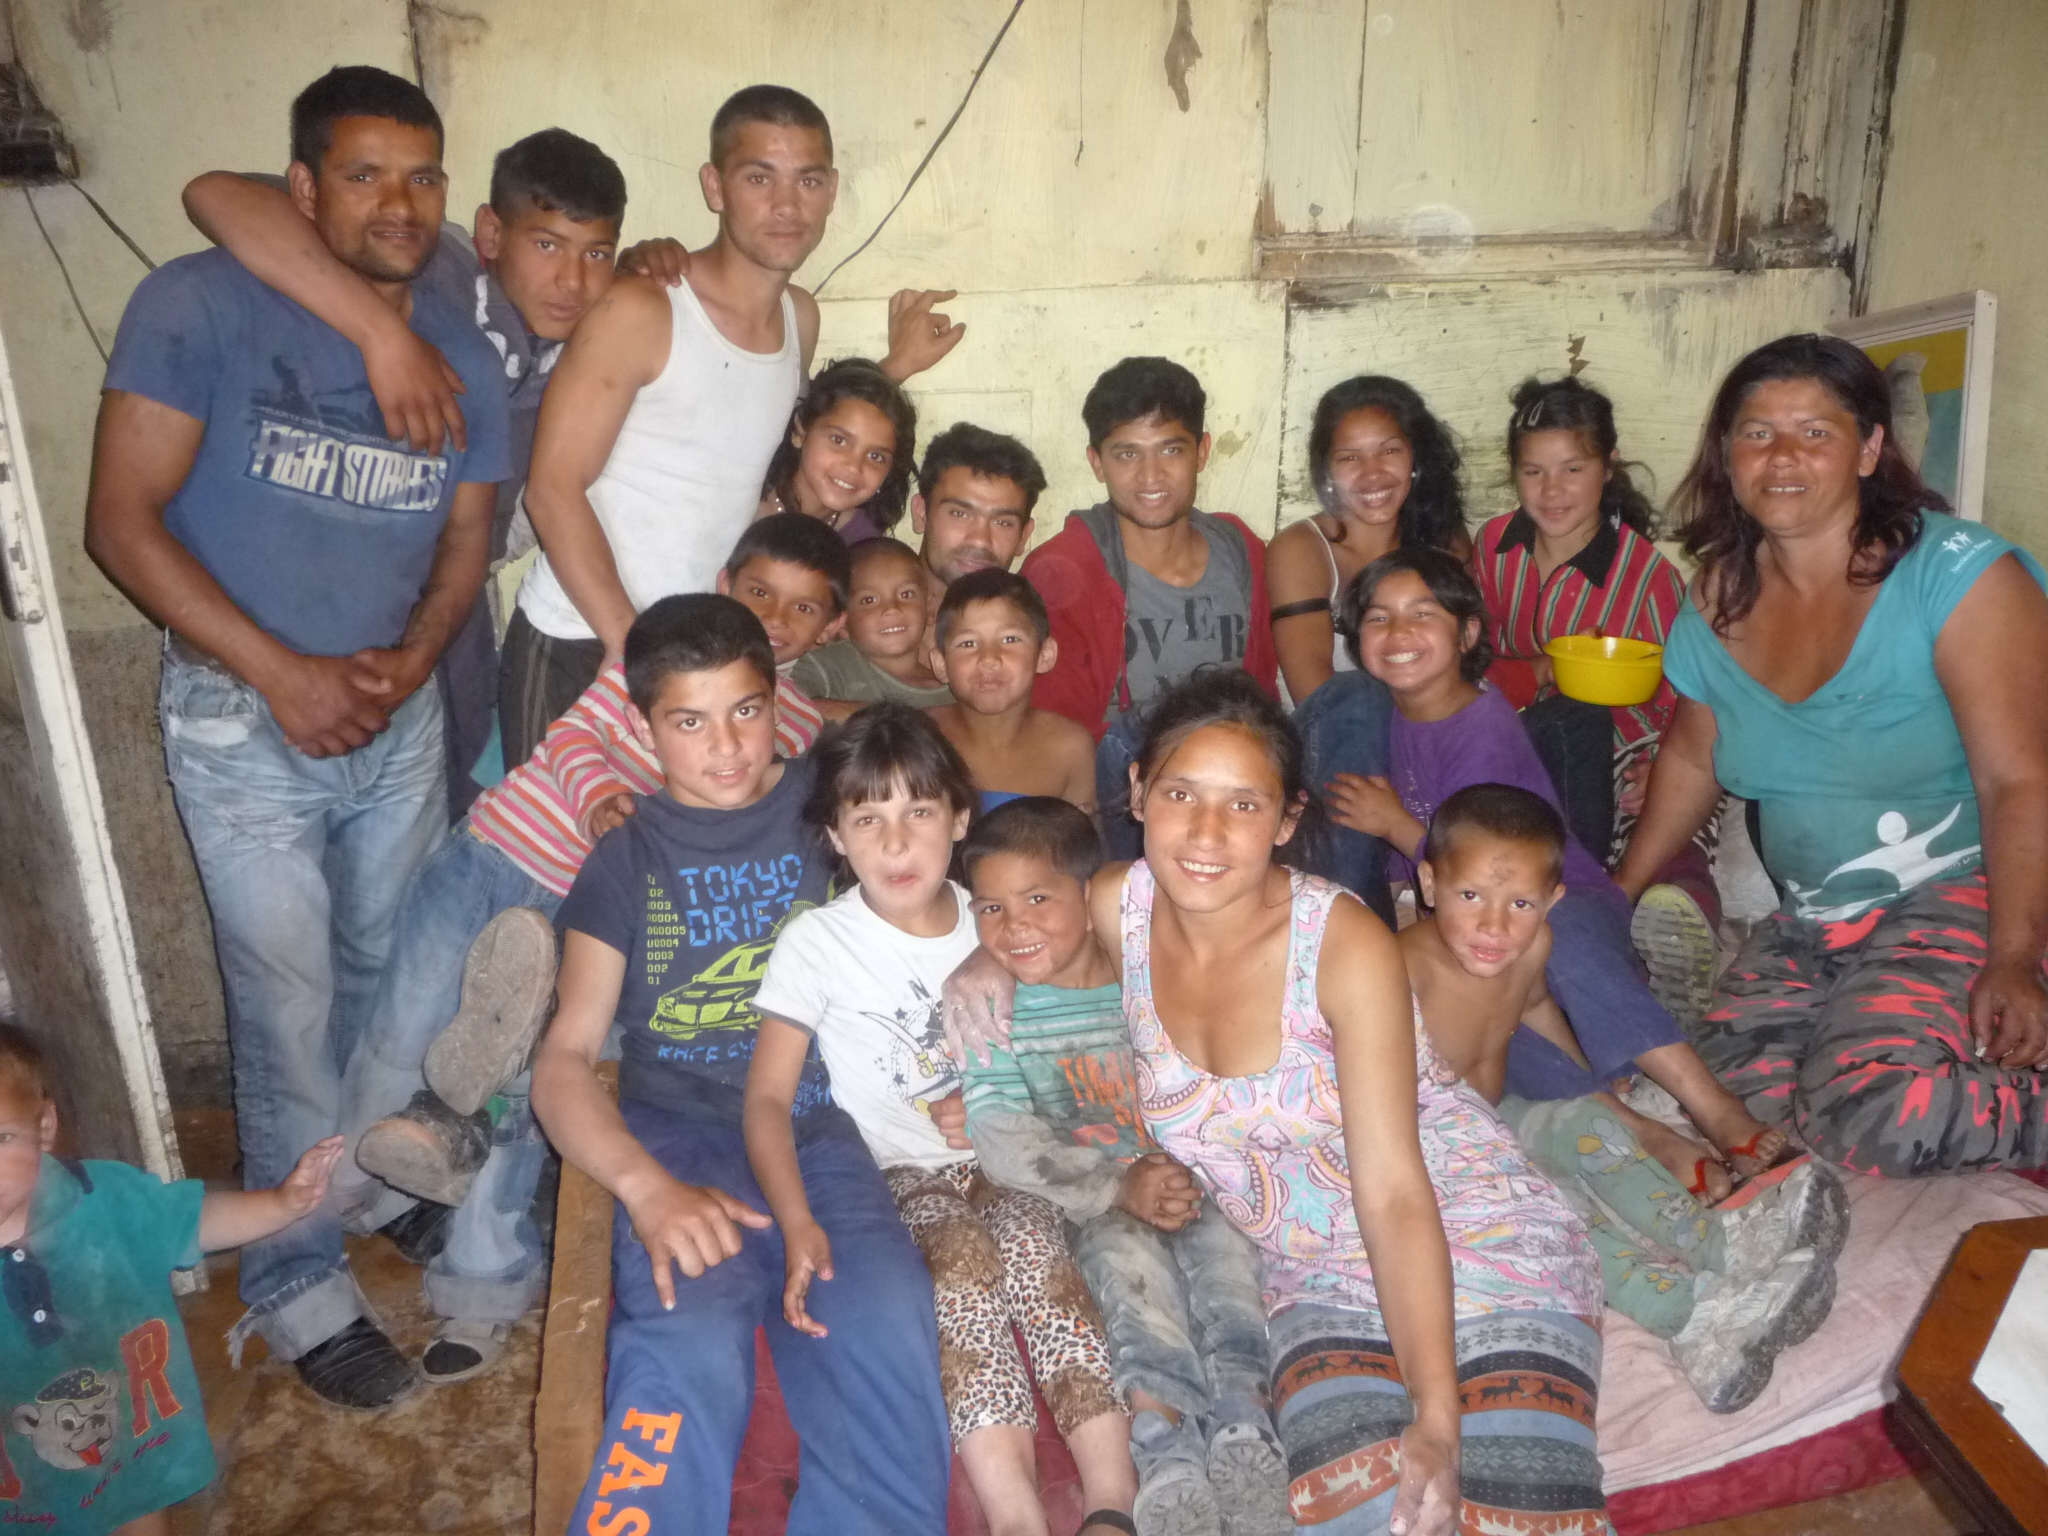 Nahush with host family